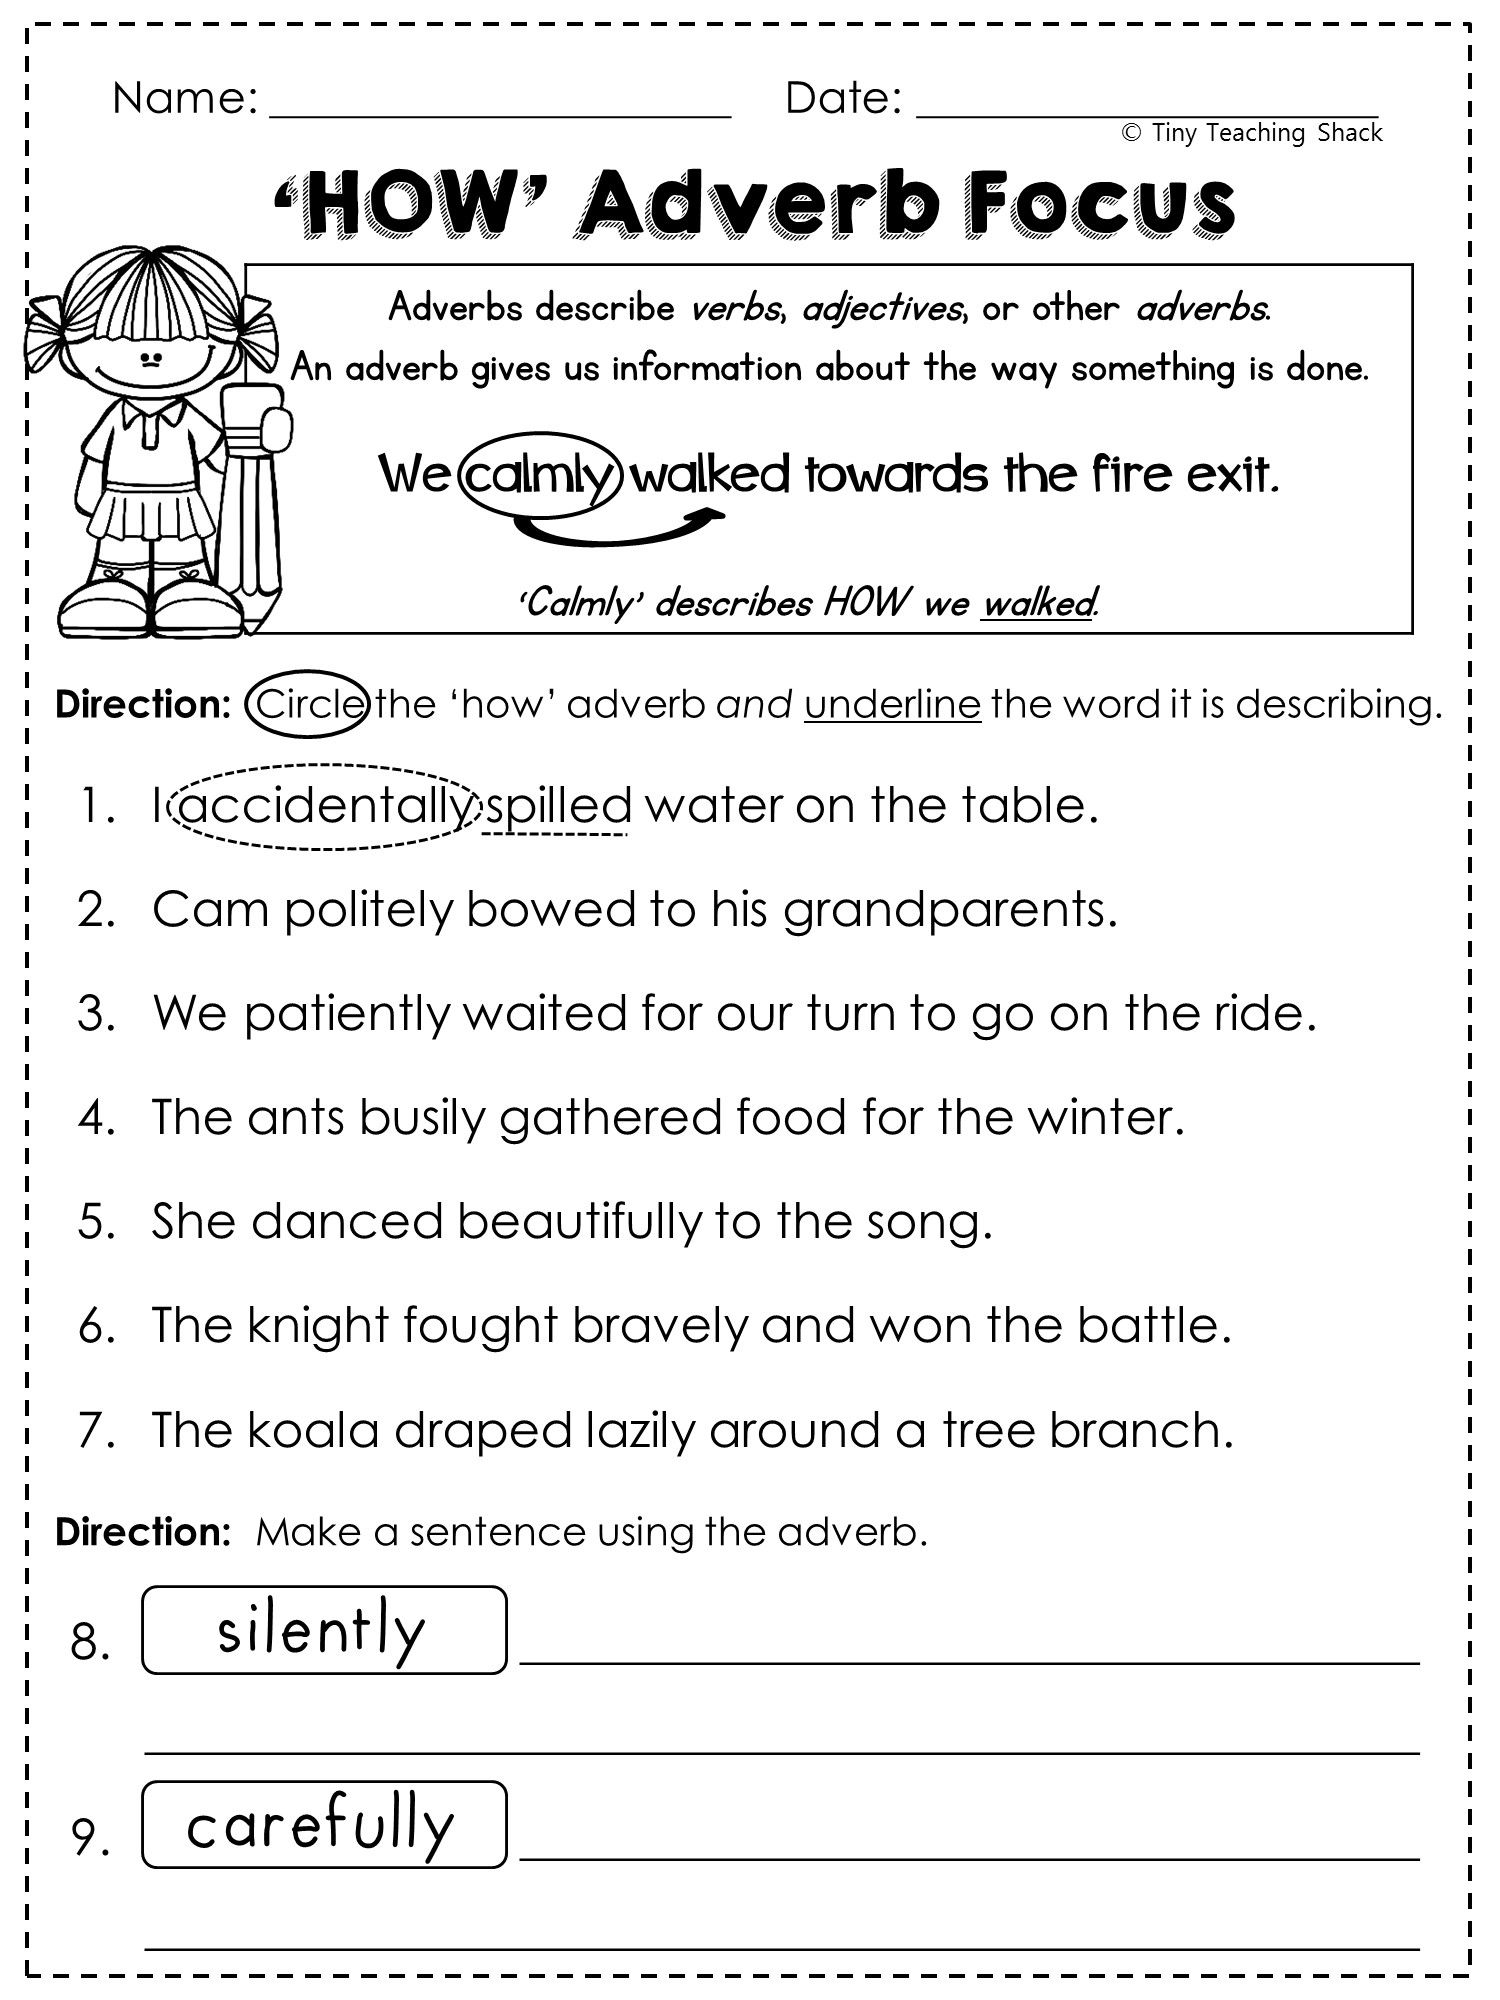 worksheet Adjectives Worksheets For Grade 5 free adverb worksheet printables pinterest adverbs worksheets 2nd grade language arts and grammar practice sheets freebie common core or not